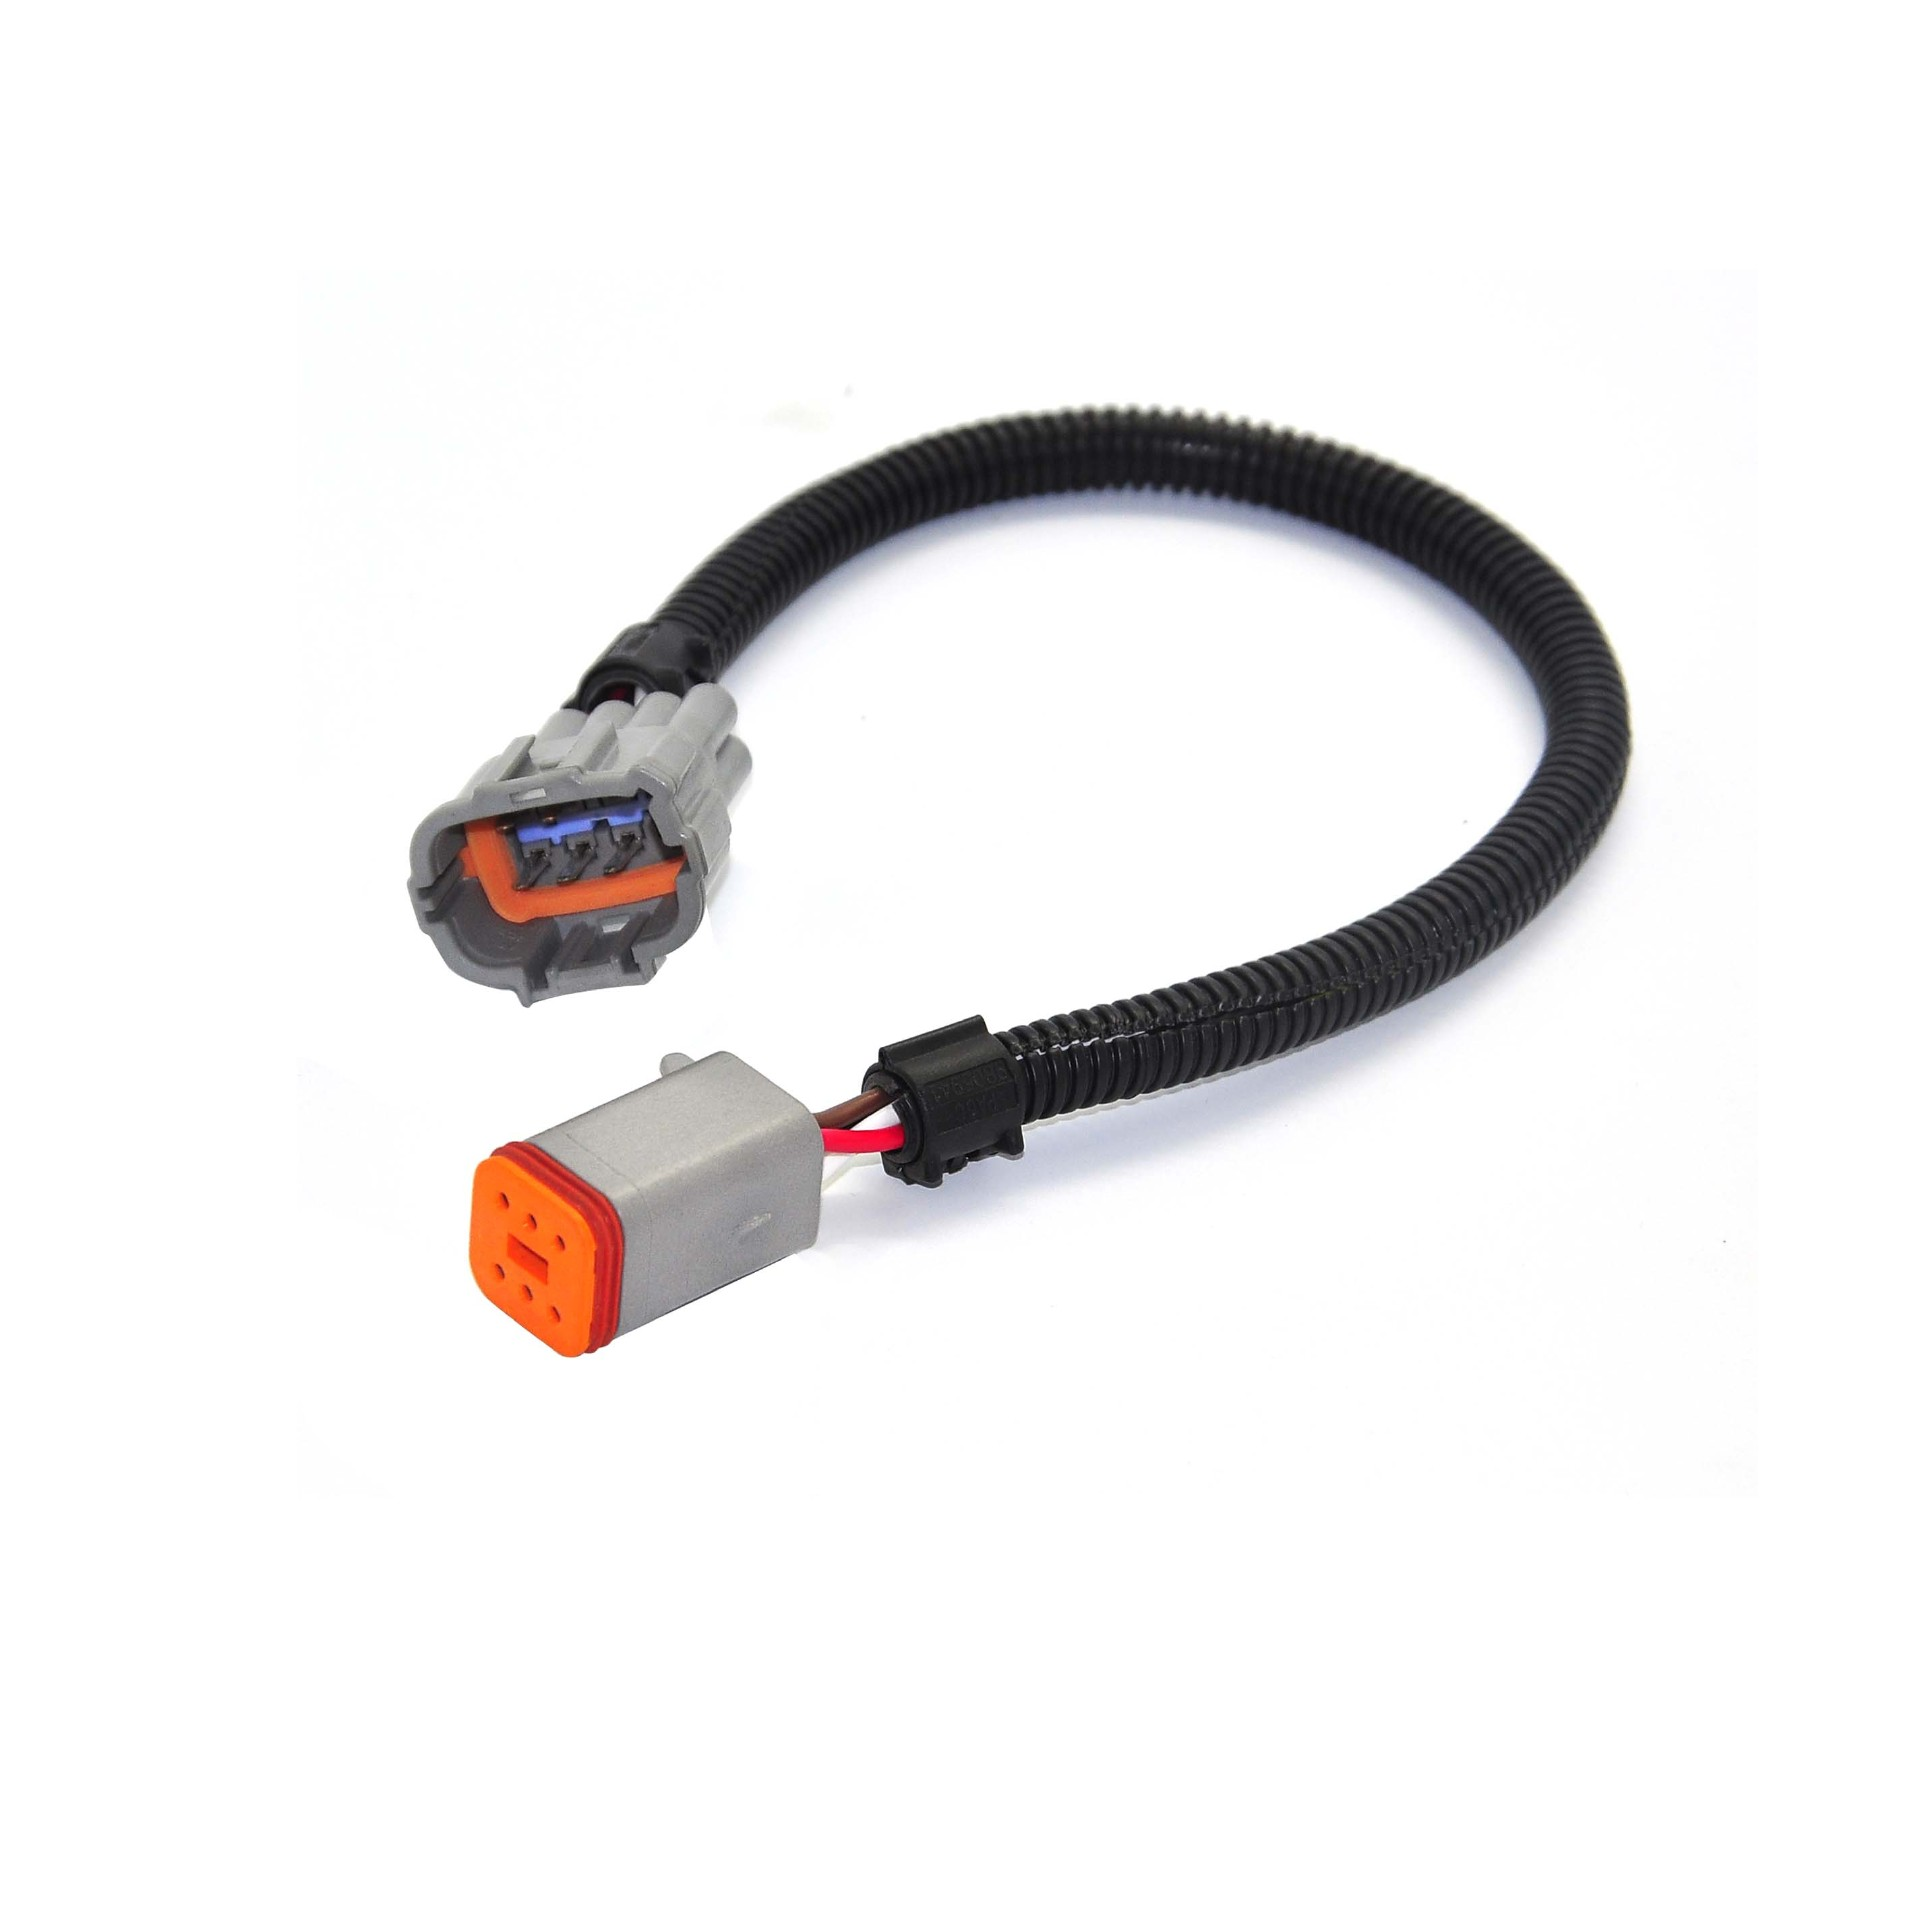 6pin car socket cable